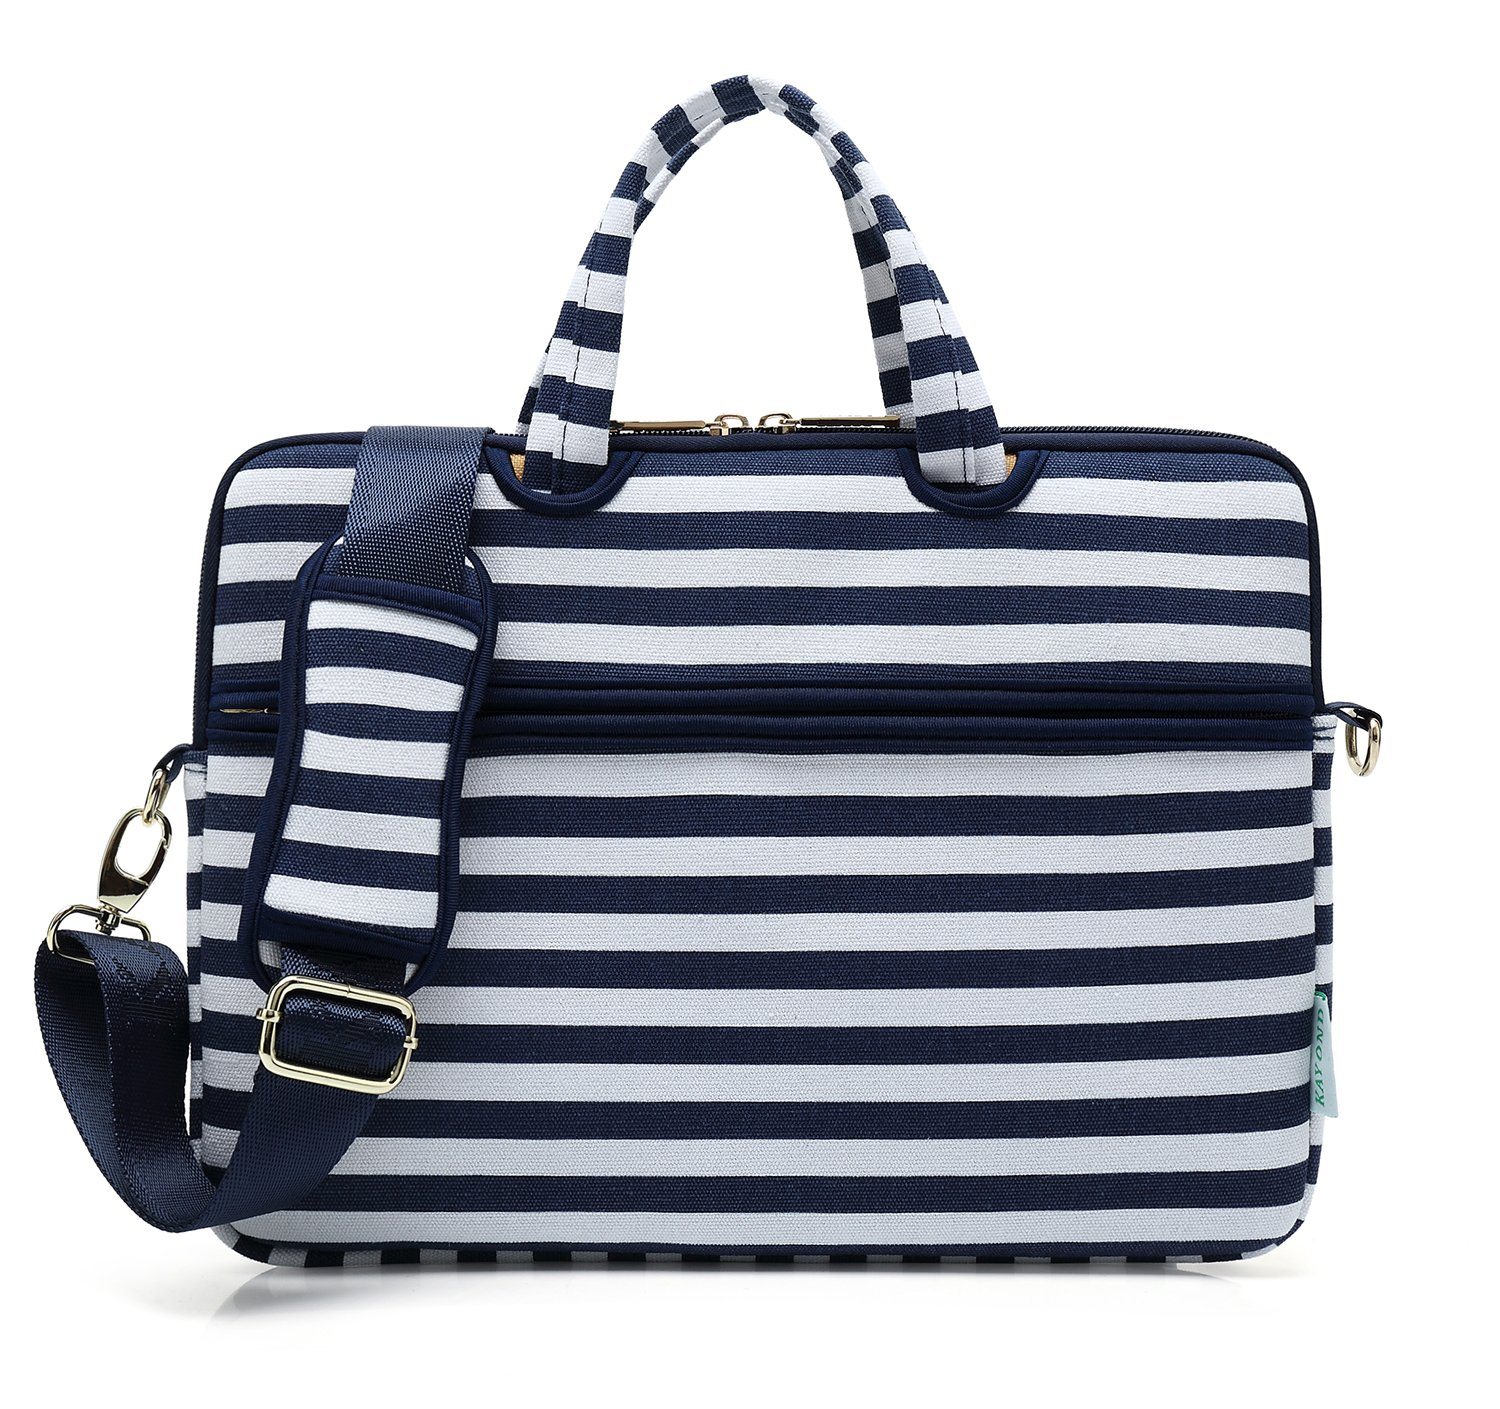 Kayond Canvas Fabric Ultraportable Neoprene Laptop Carrying Case/Shoulder Messenger Bag/Daily Briefcase Work/School/Travel(15-15.6, Breton Stripe) by kayond (Image #1)